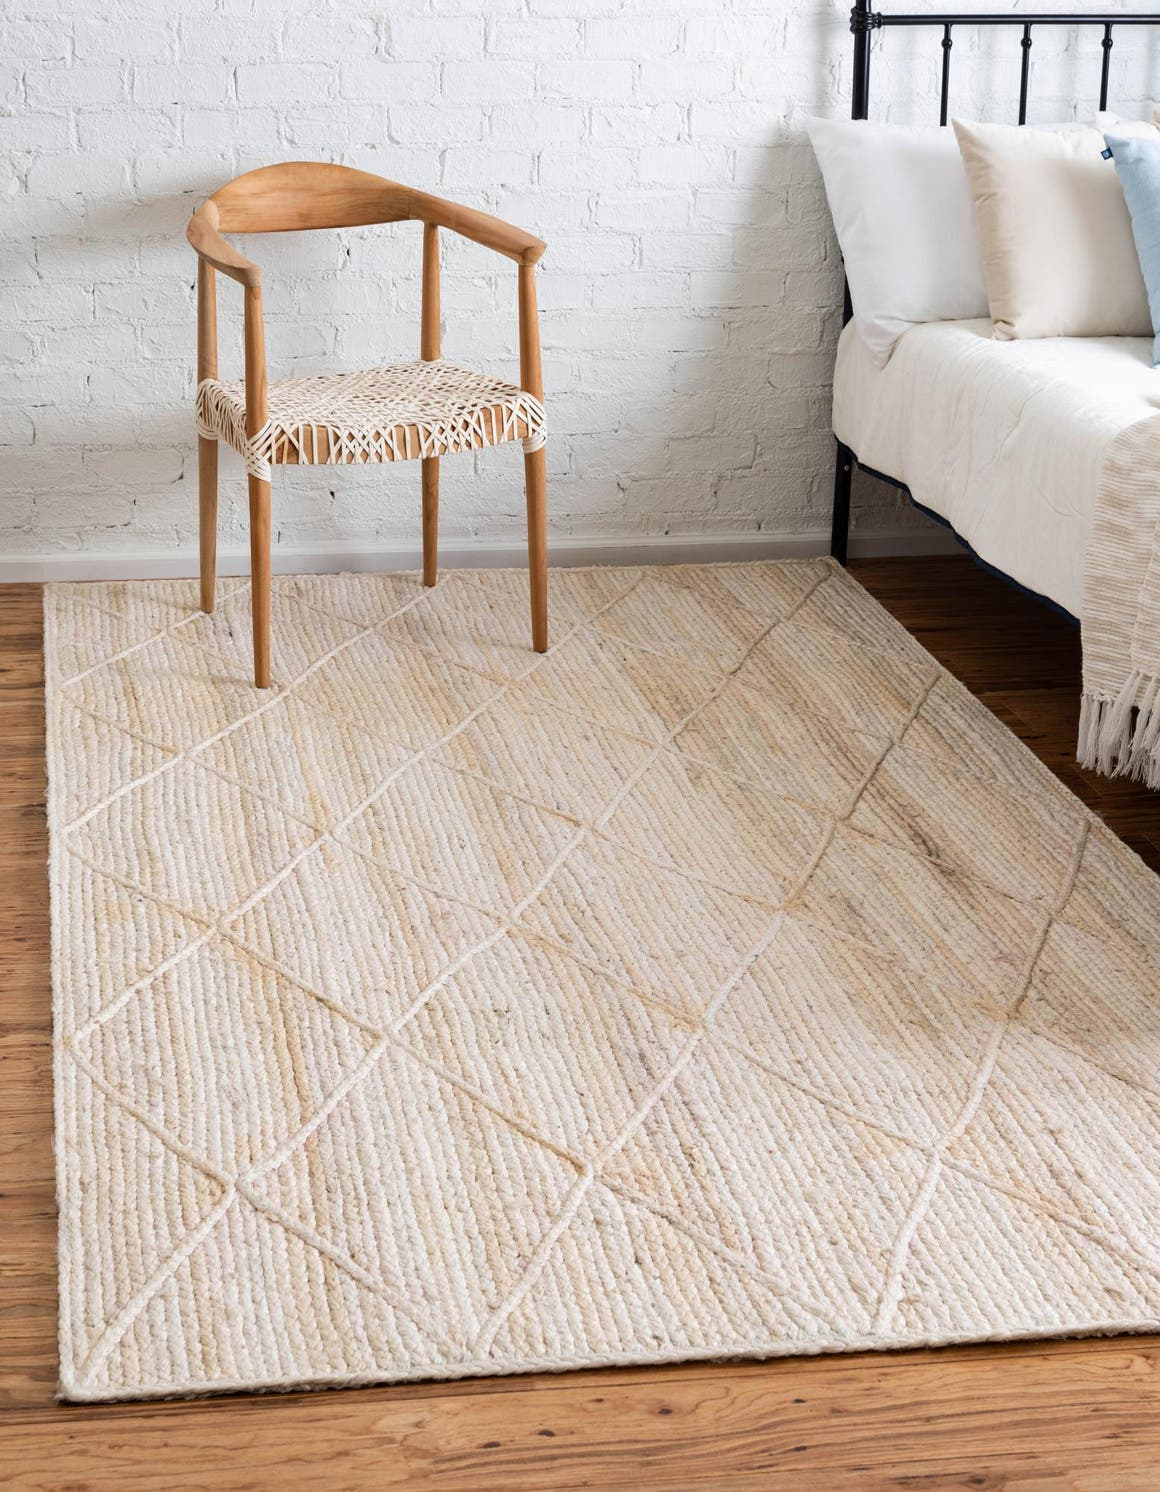 6' x 9' Braided Jute Rug main image